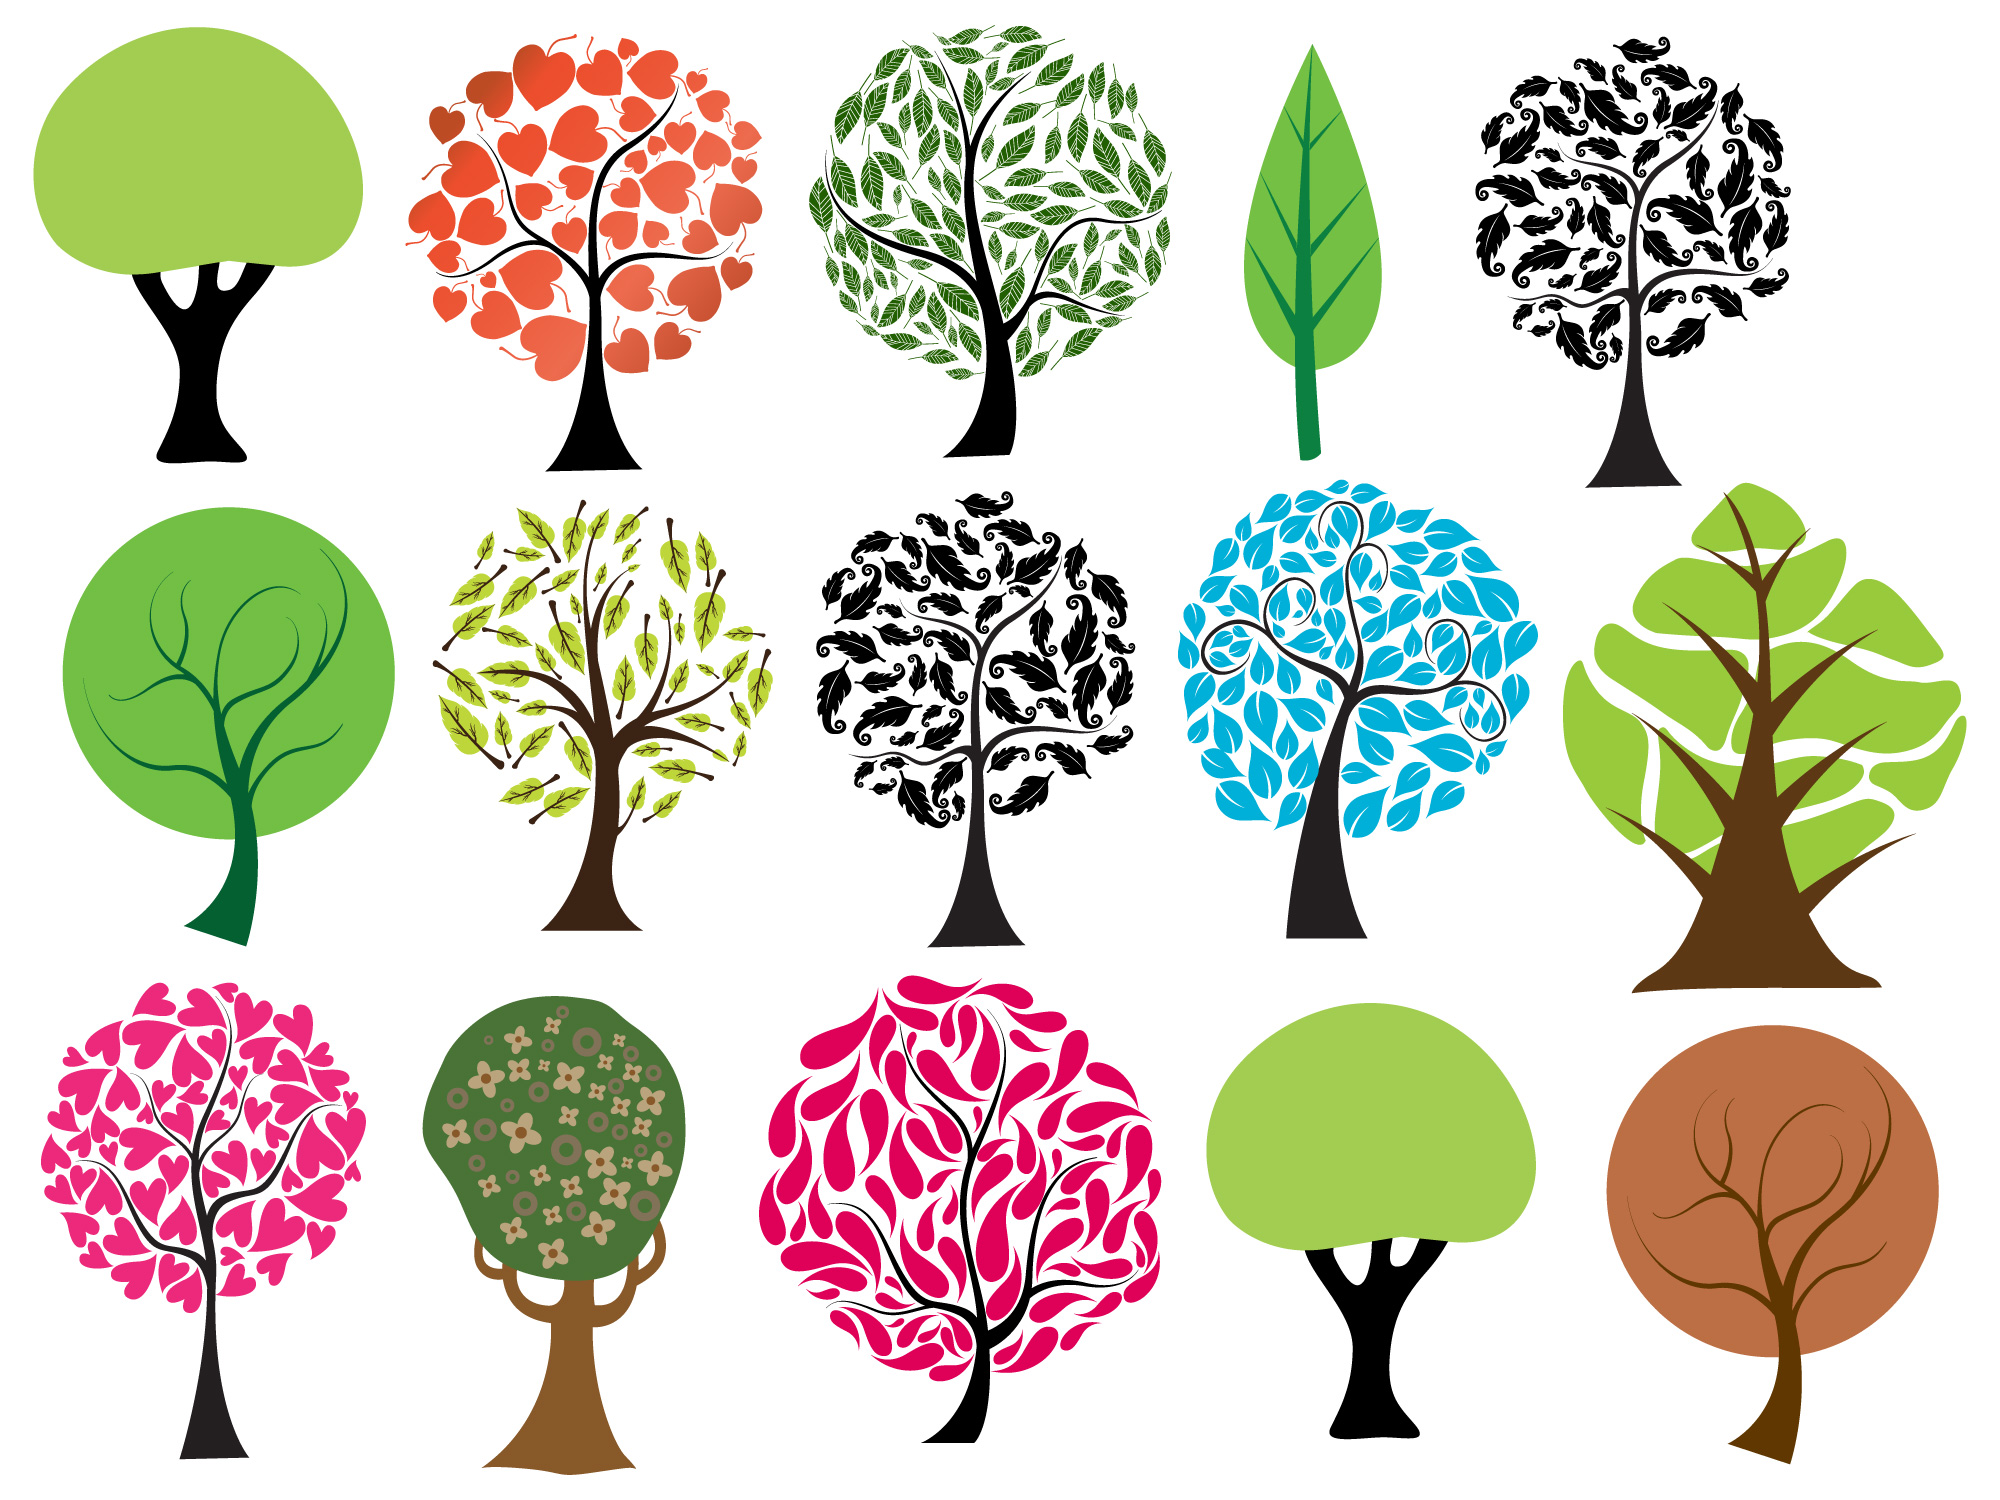 2000x1500 Trees Vectors, Brushes, Png, Pictures And Shapes